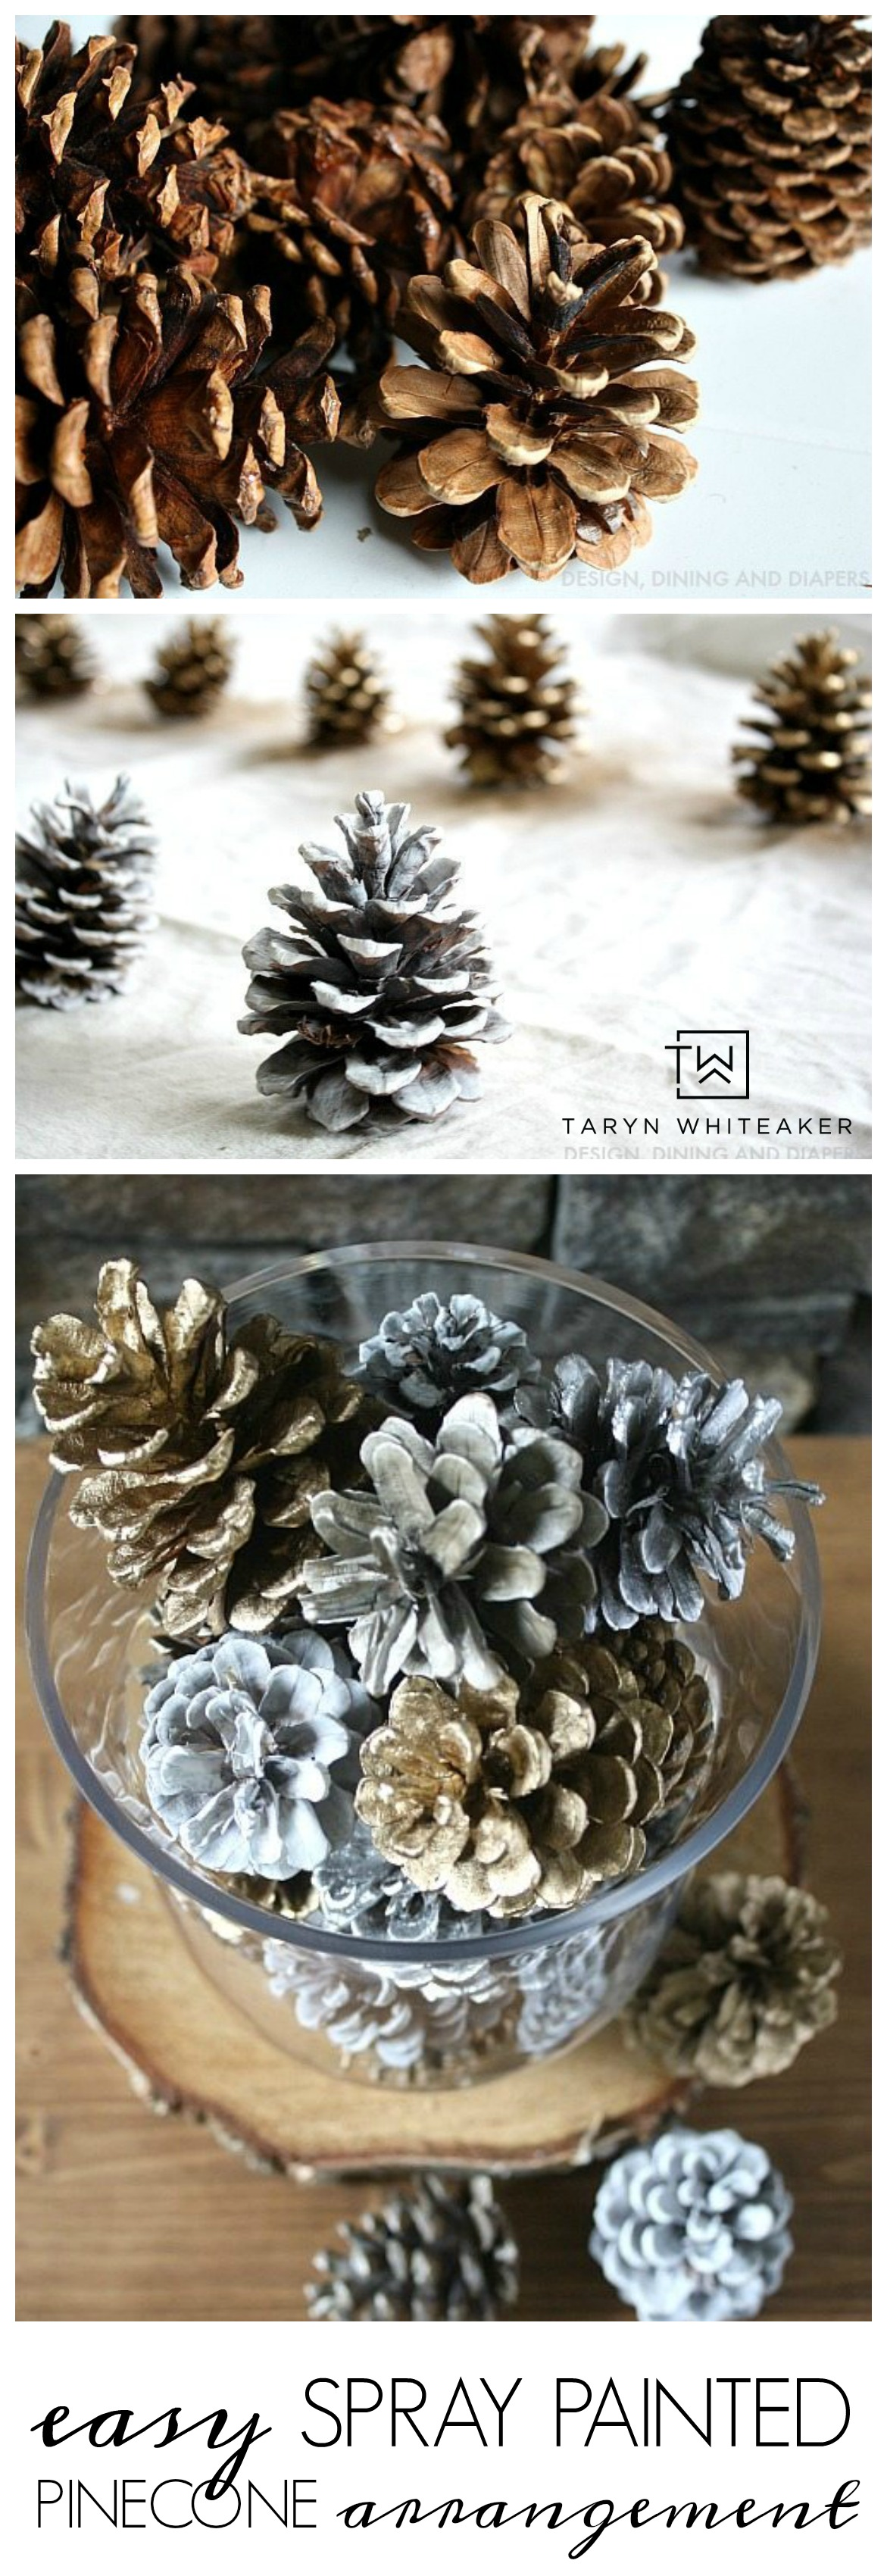 Quick Holiday Decor: Spray Painted Pine Cones Arrangement ! This five minute holiday craft will glam up your table for the holidays!